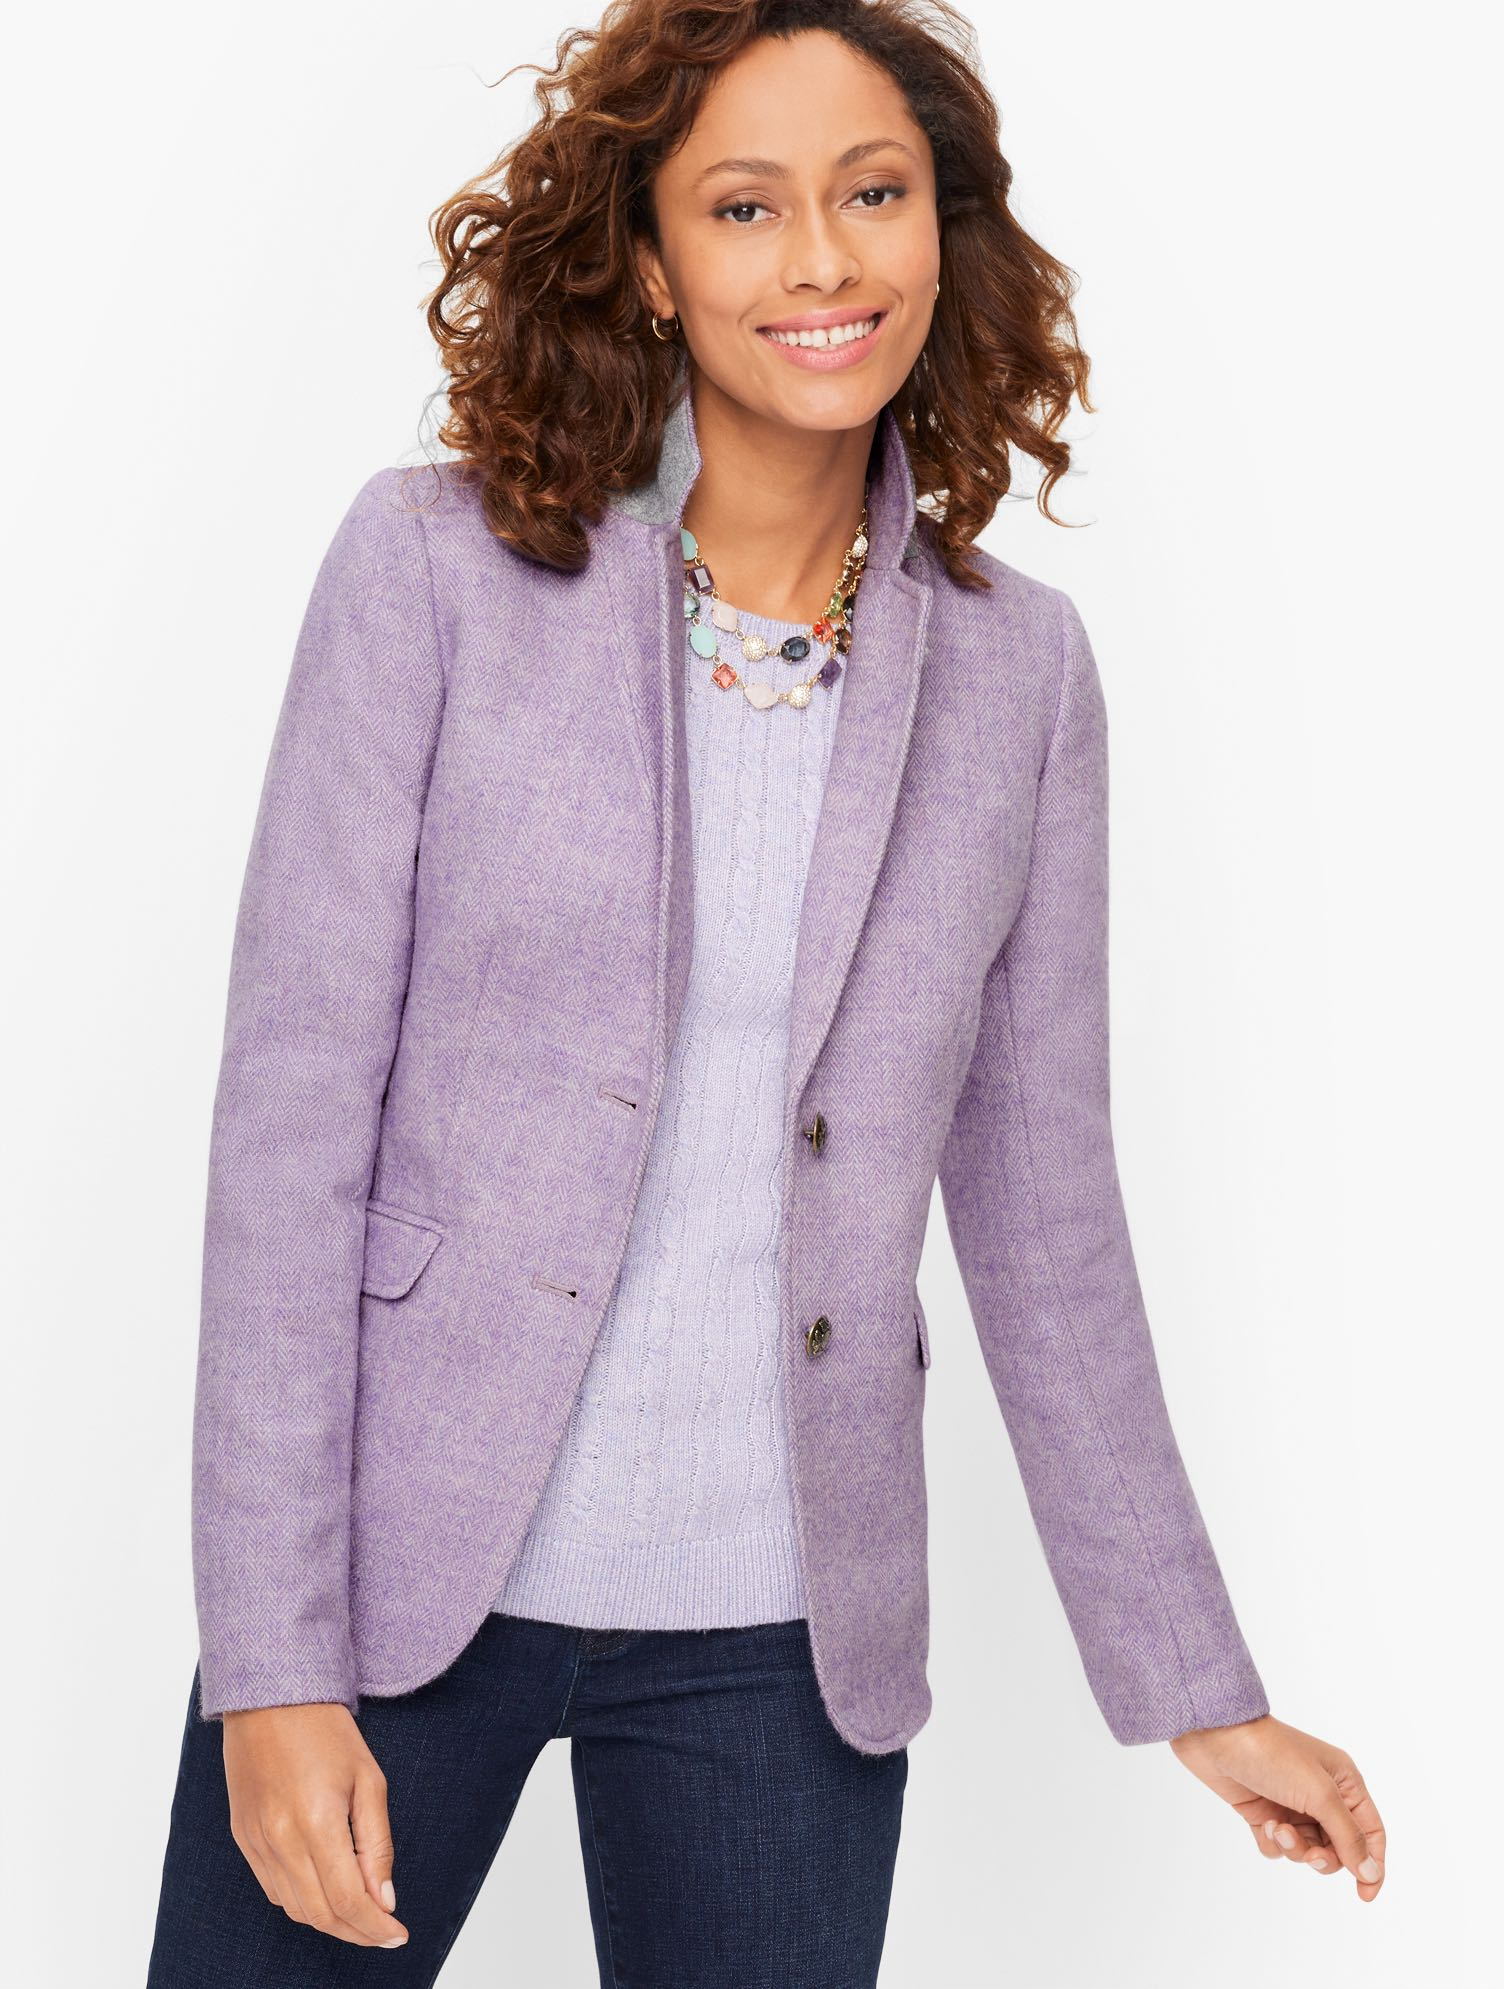 Our perennial Shetland Blazer, in mélange herringbone. A timeless style that always feels new. Features Sleeve length: LongHits: At hipClosure: Button FrontLinedImported Fit: Misses: 25 inches; Petite: 23 1/2 inches; Plus: 27 inches; Plus Petite: 25 1/2 inches Material: 48% Wool, 27% Polyester, 25% Viscose; Lining 100% Polyester Care: Dry Clean Classic Shetland Blazer - Mélange - Lilac - 22 Talbots